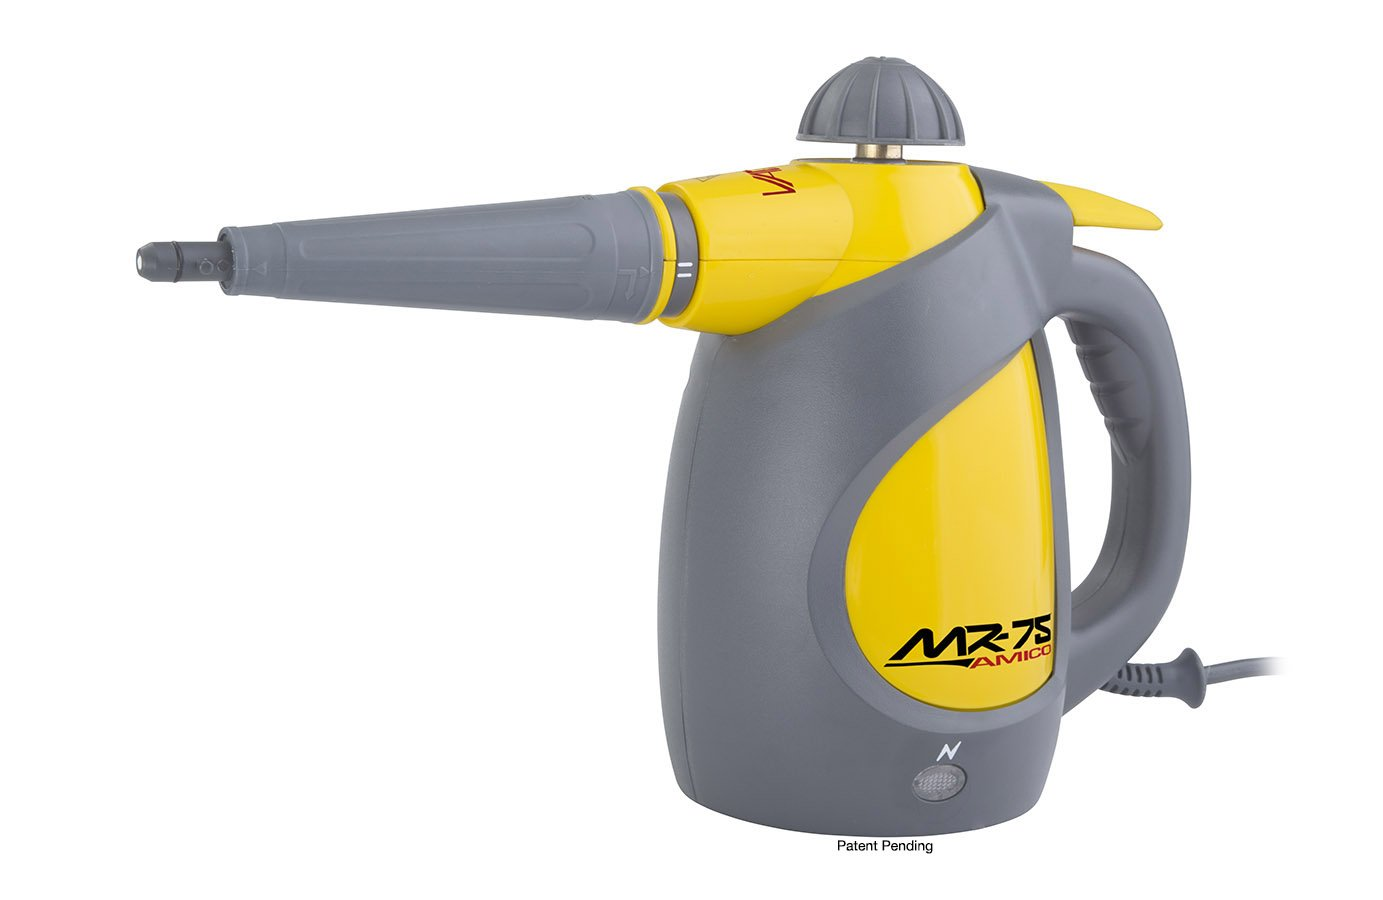 Vapamore MR-75 Amico Hand Held Steam Cleaner by Vapamore